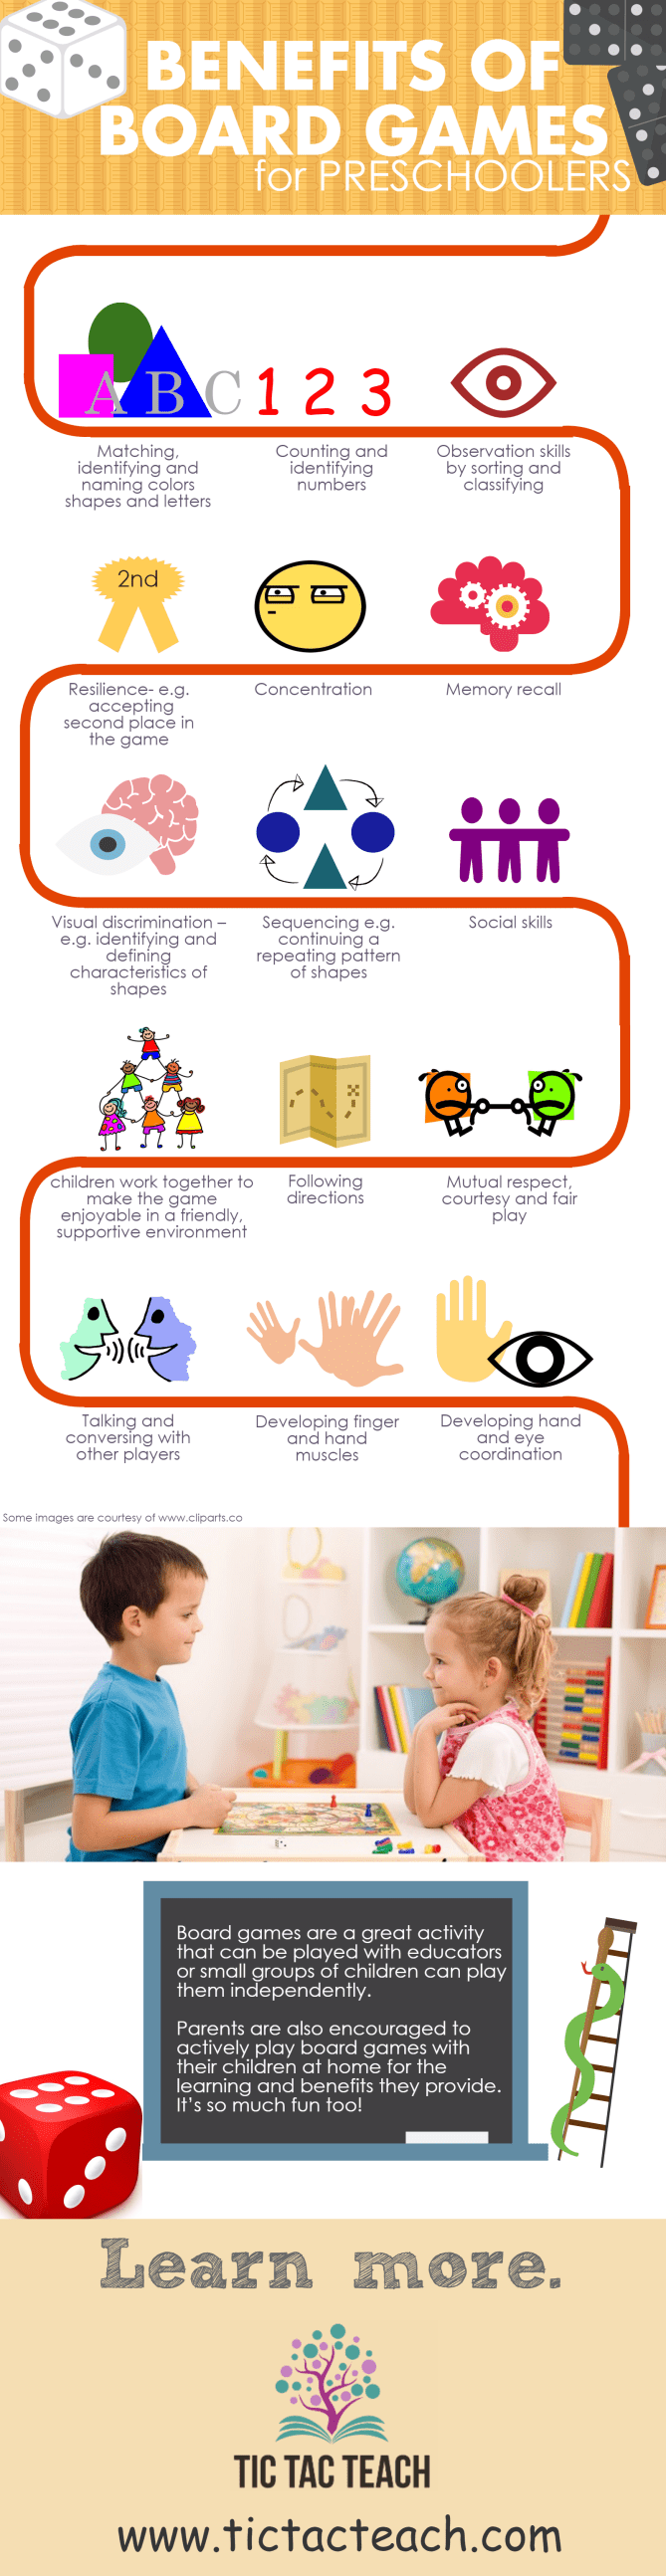 Preschool board games - TicTacTeach